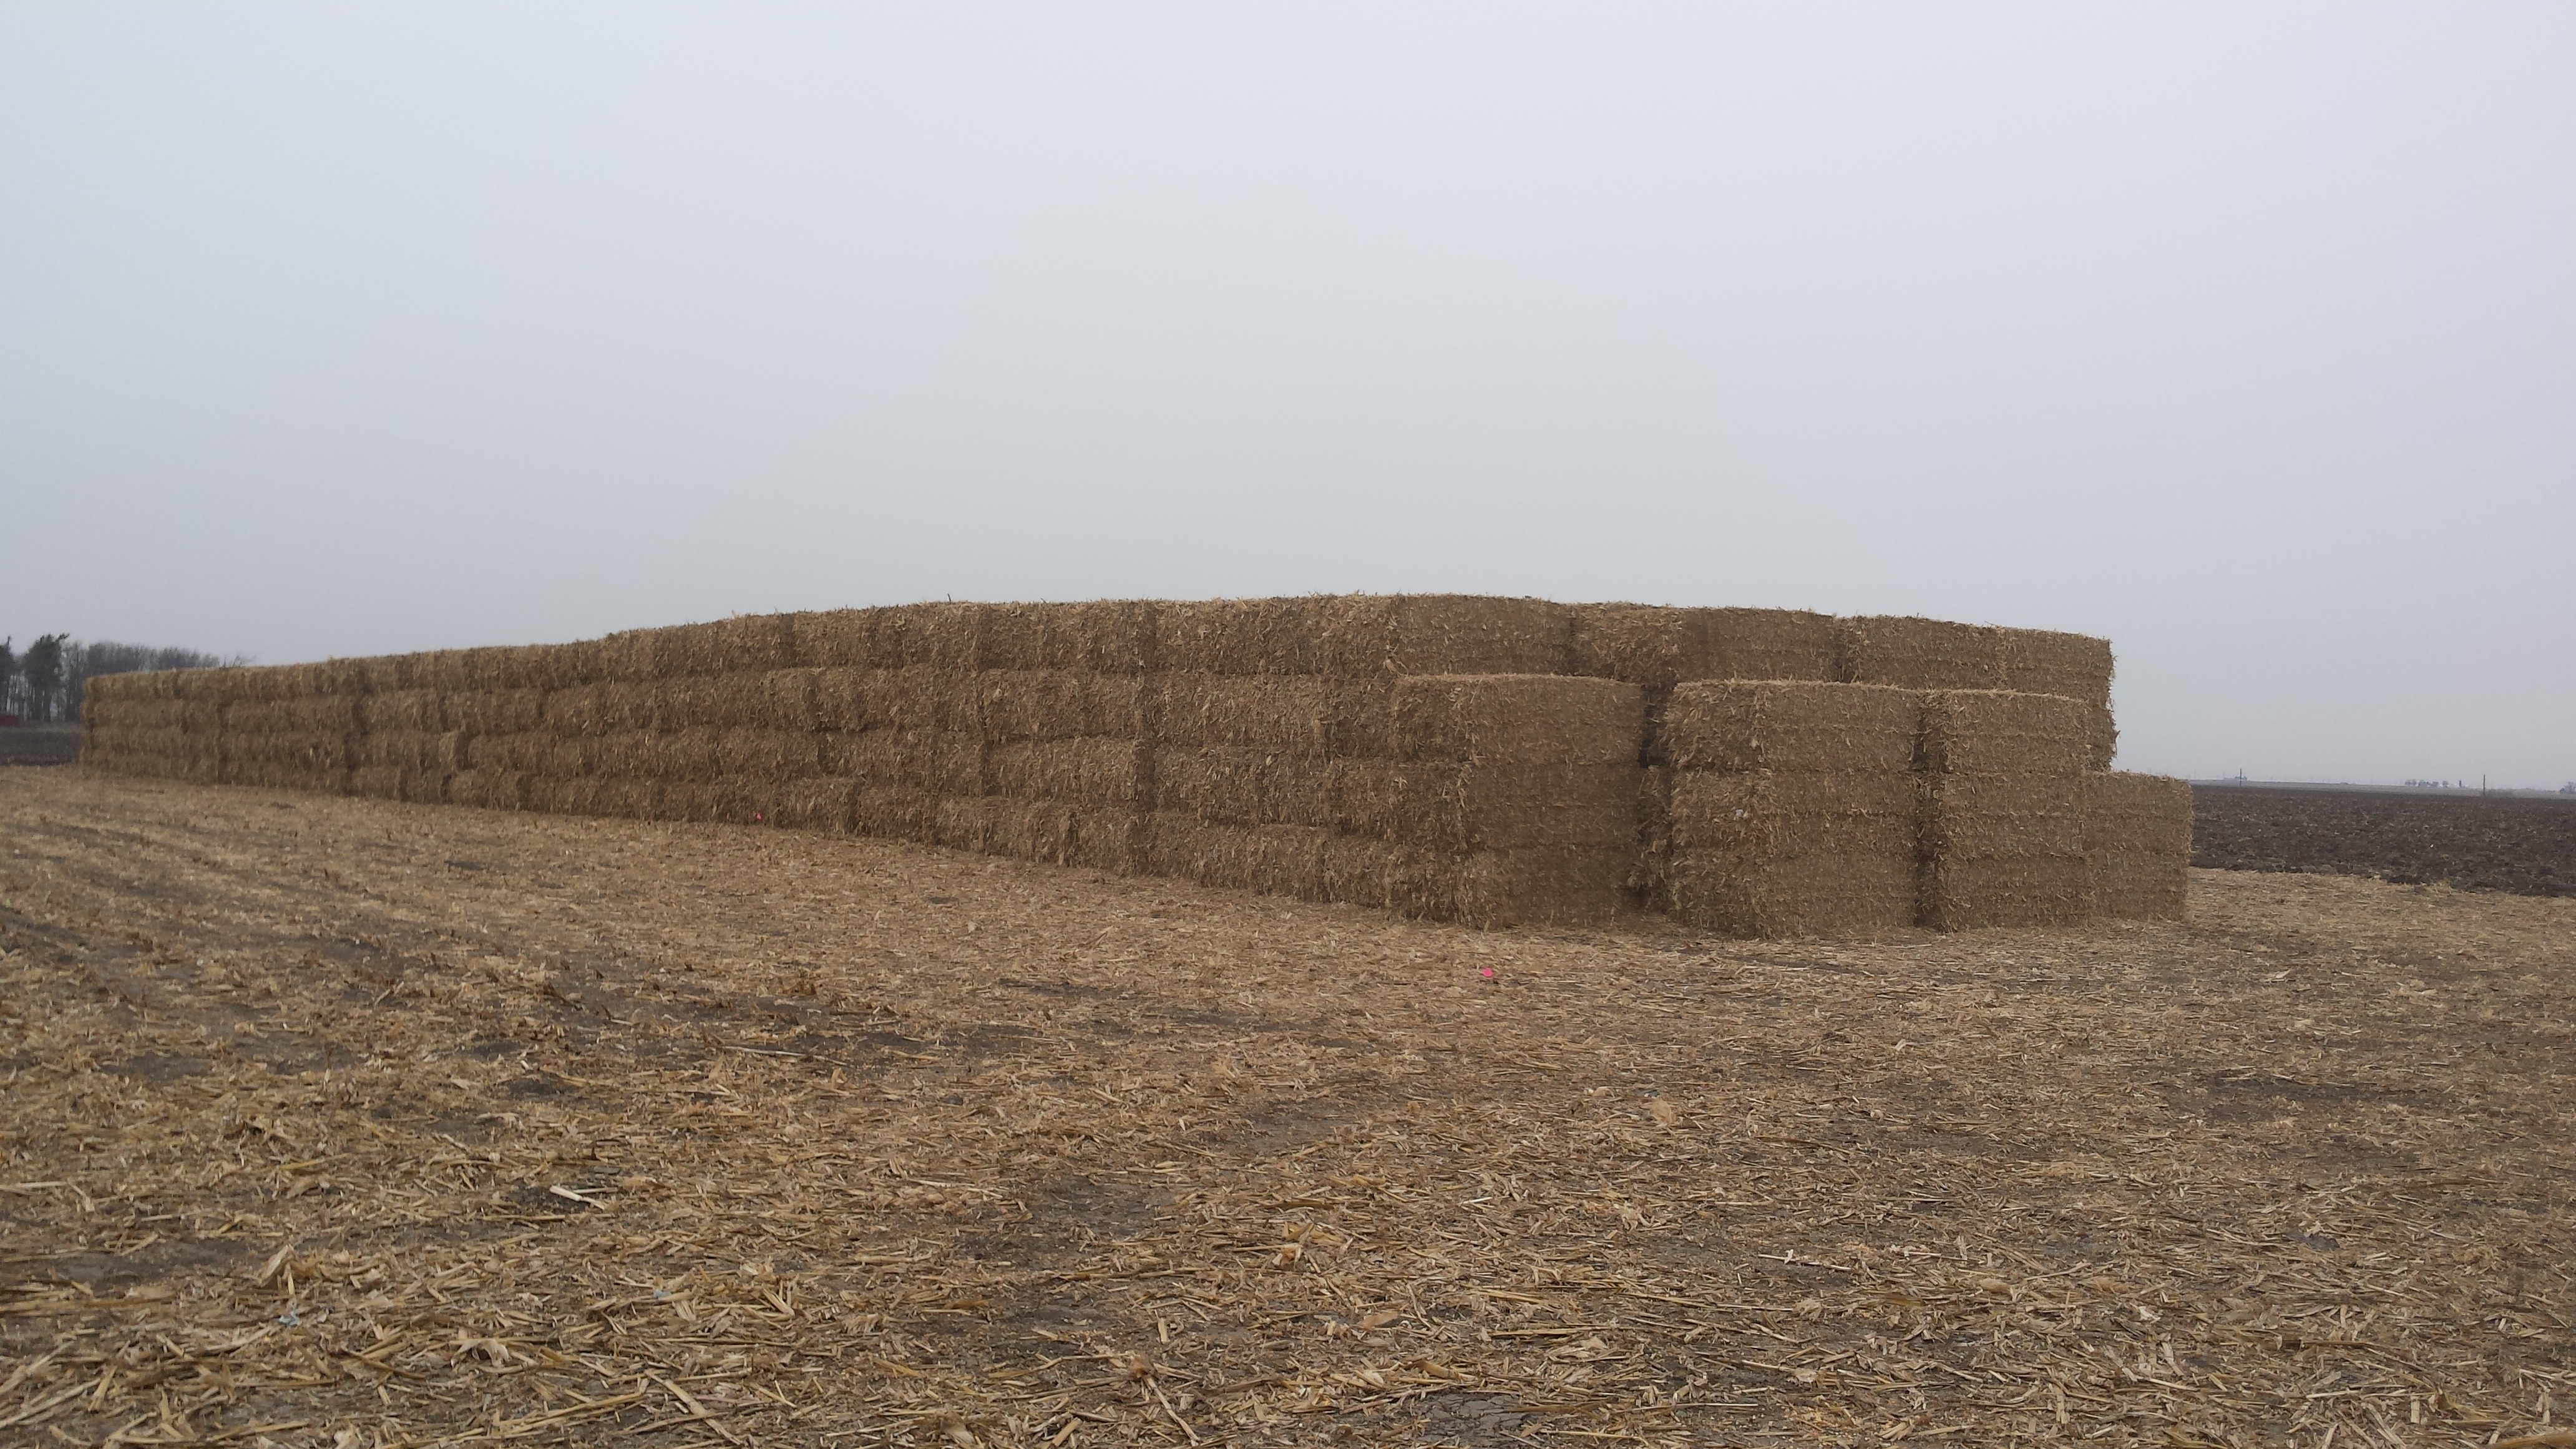 Stack of bales for the Cellulose Ethanol Plant